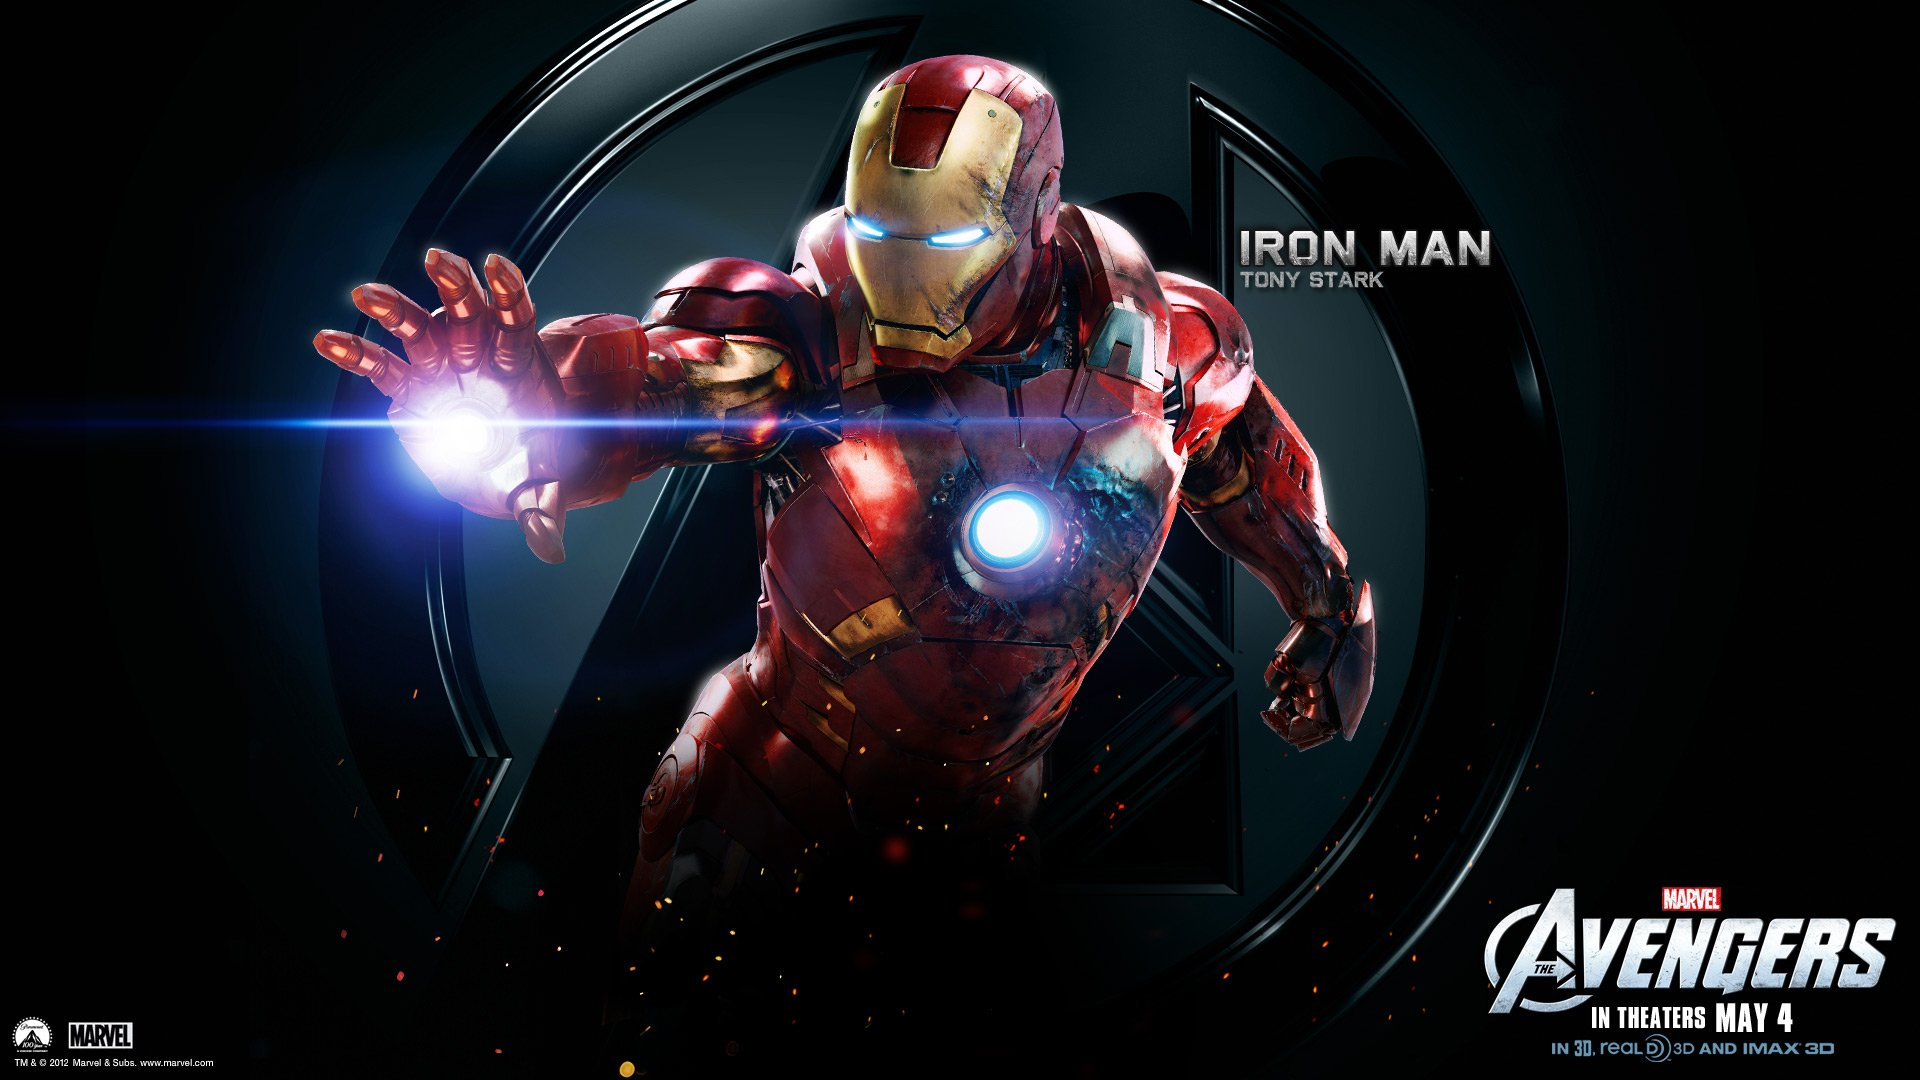 Avengers Wallpapers HD The Avengers Iron Man HD Wallpapers [Avengers 1920x1080